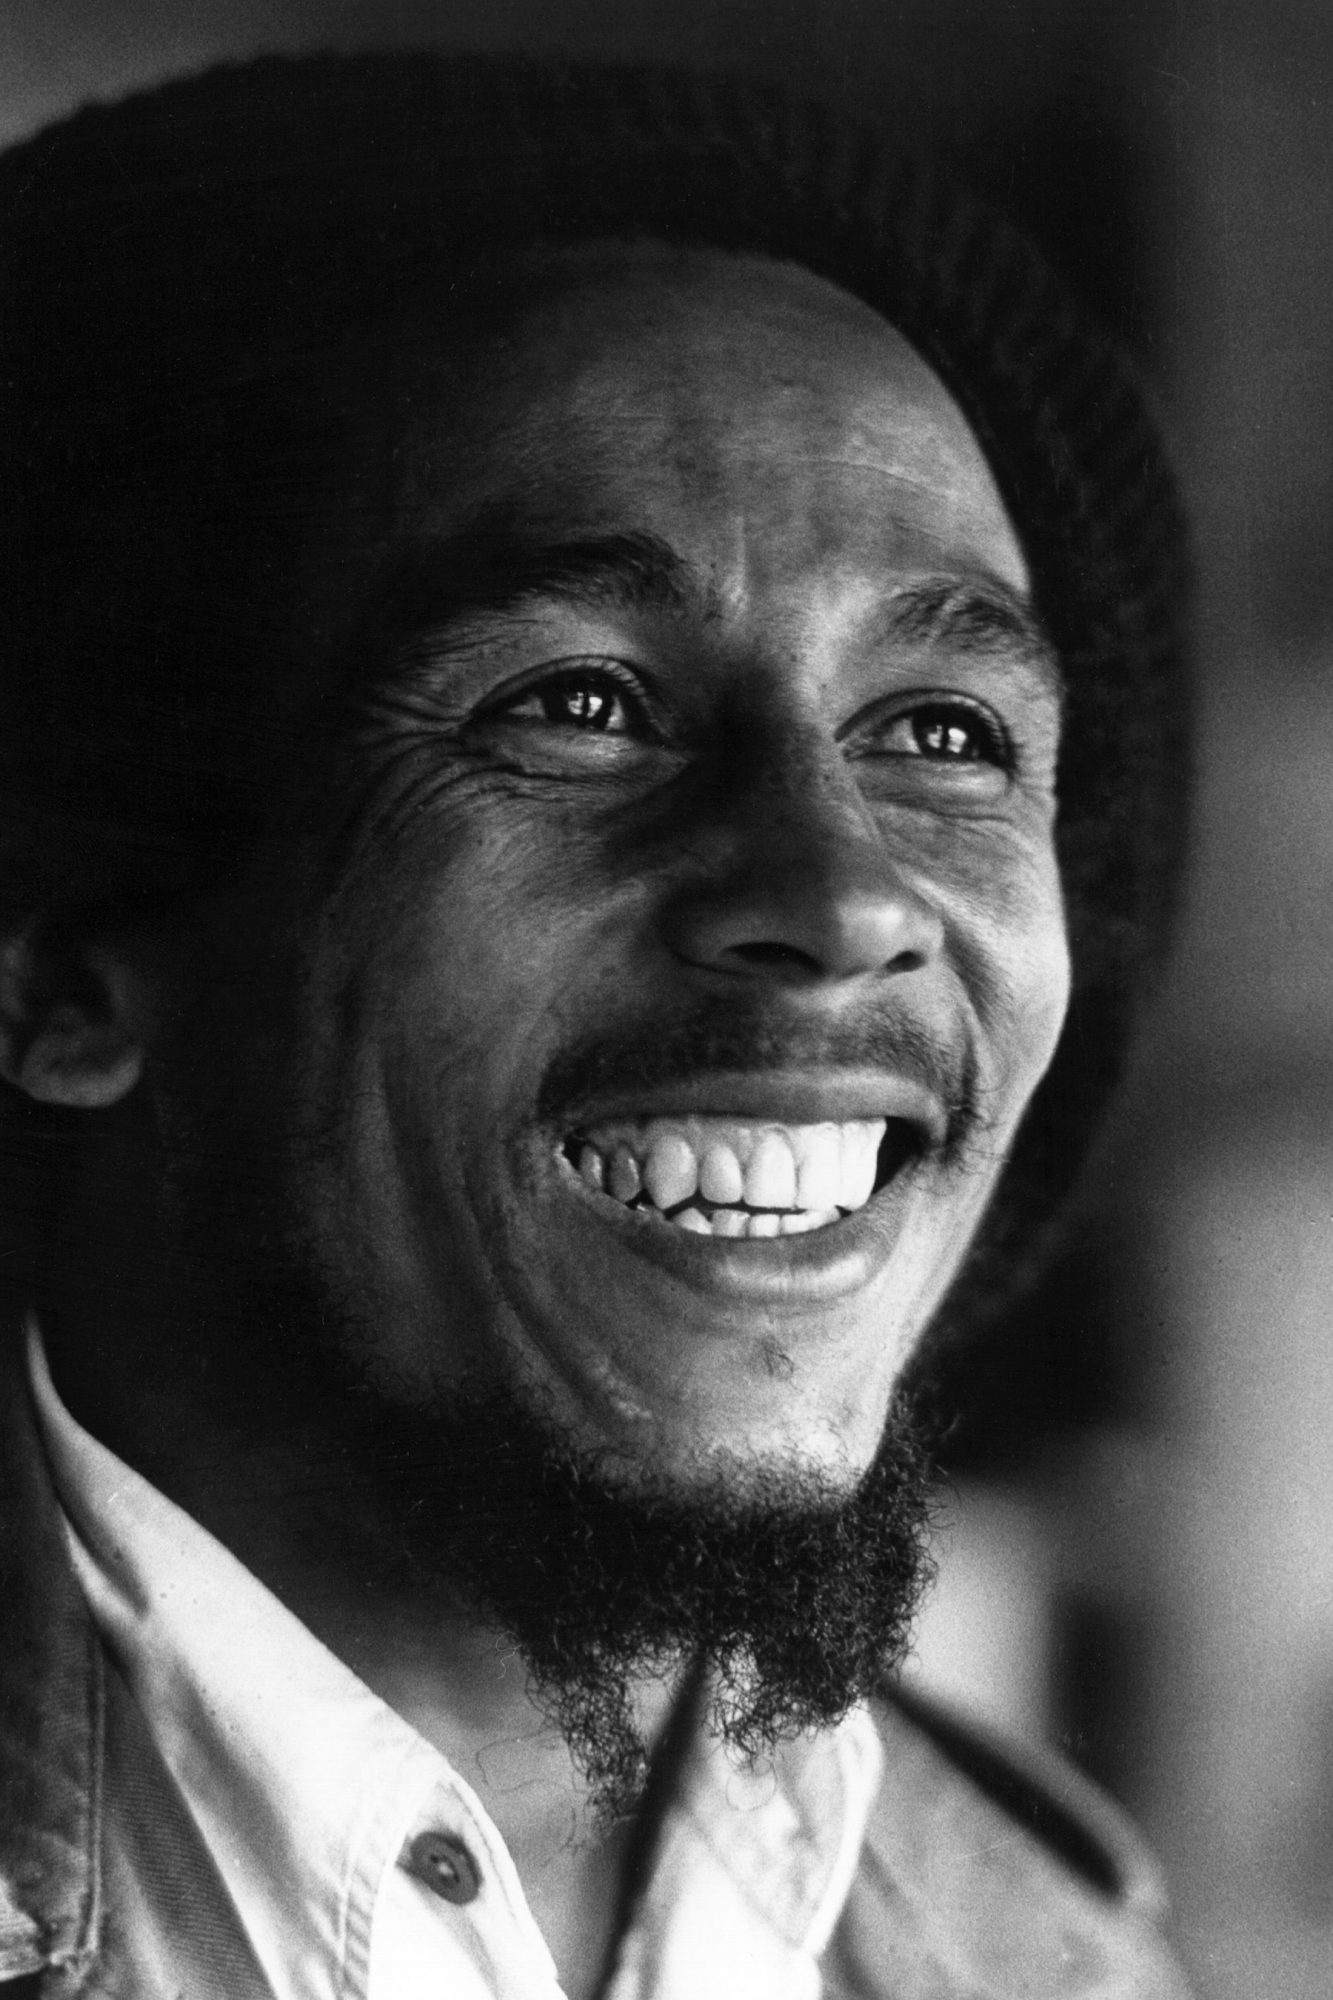 Bob Marley in London on June 3, 1977